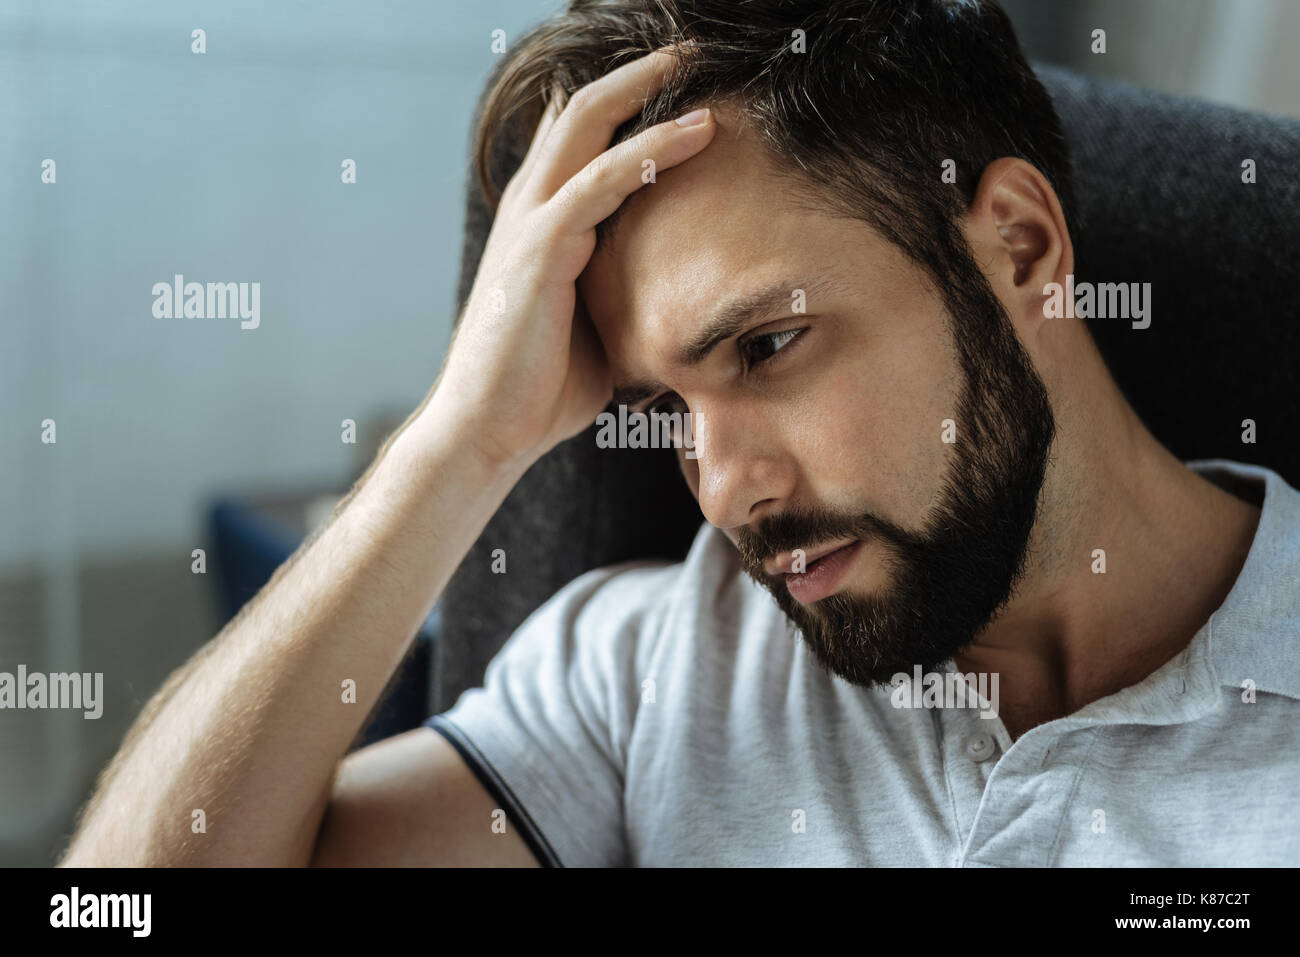 Sad bearded man feeling frustrated - Stock Image